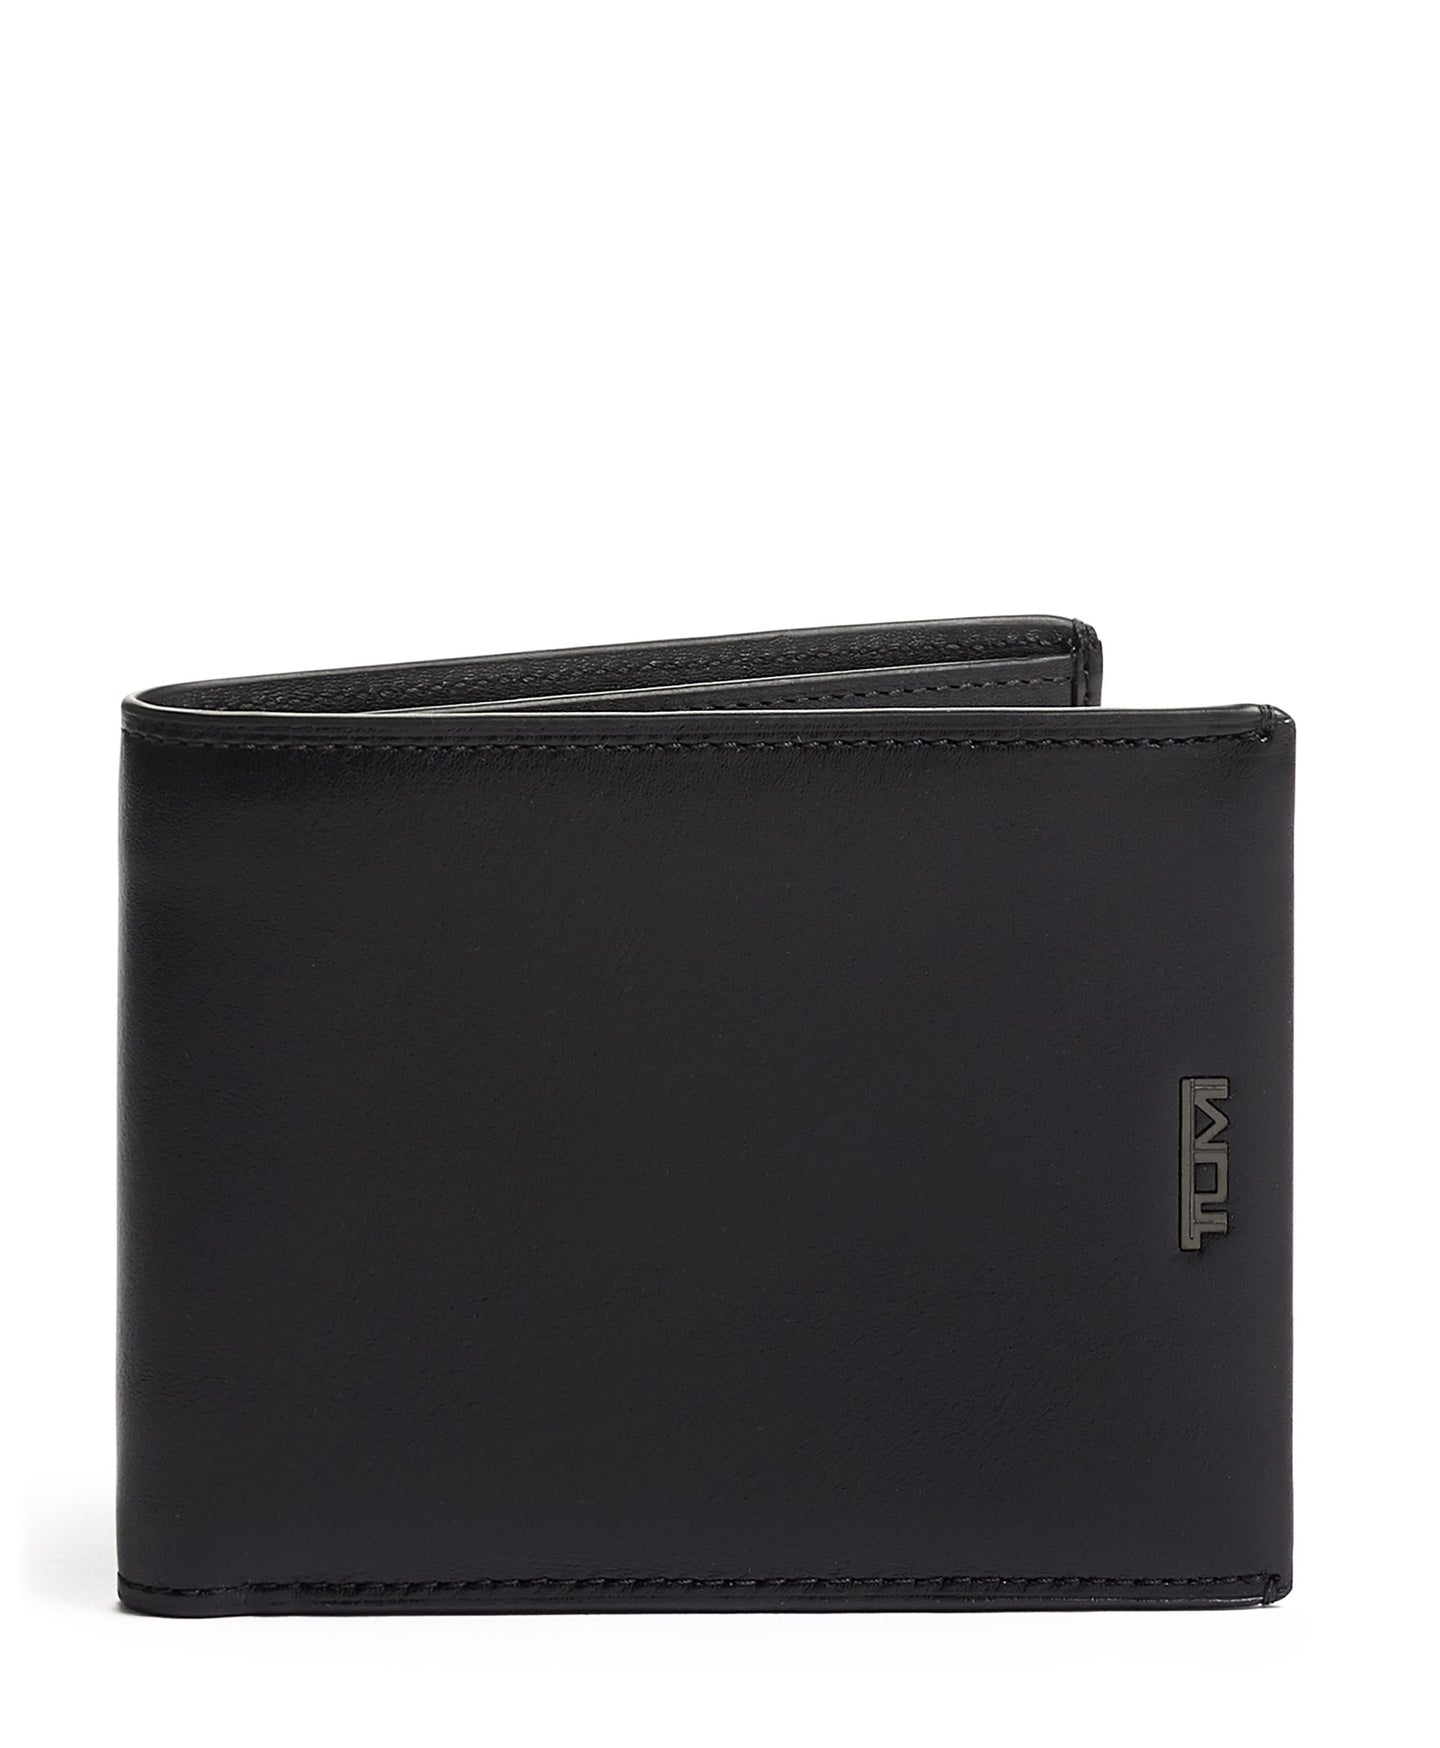 Global Wallet with Coin Pocket